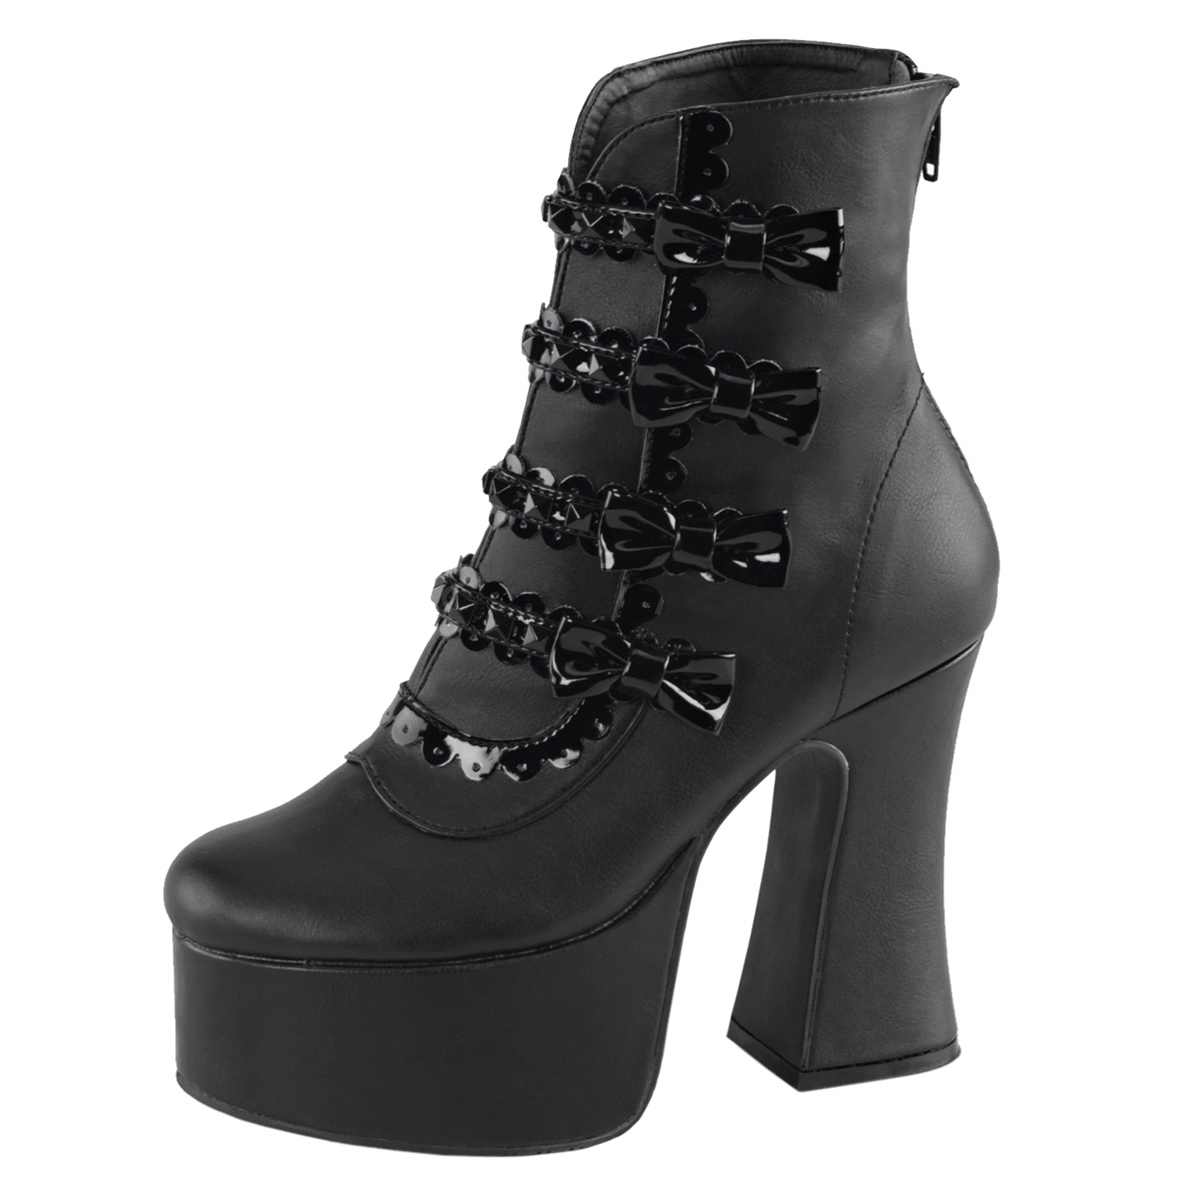 womens fashion boots black shoes chunky heel booties bows